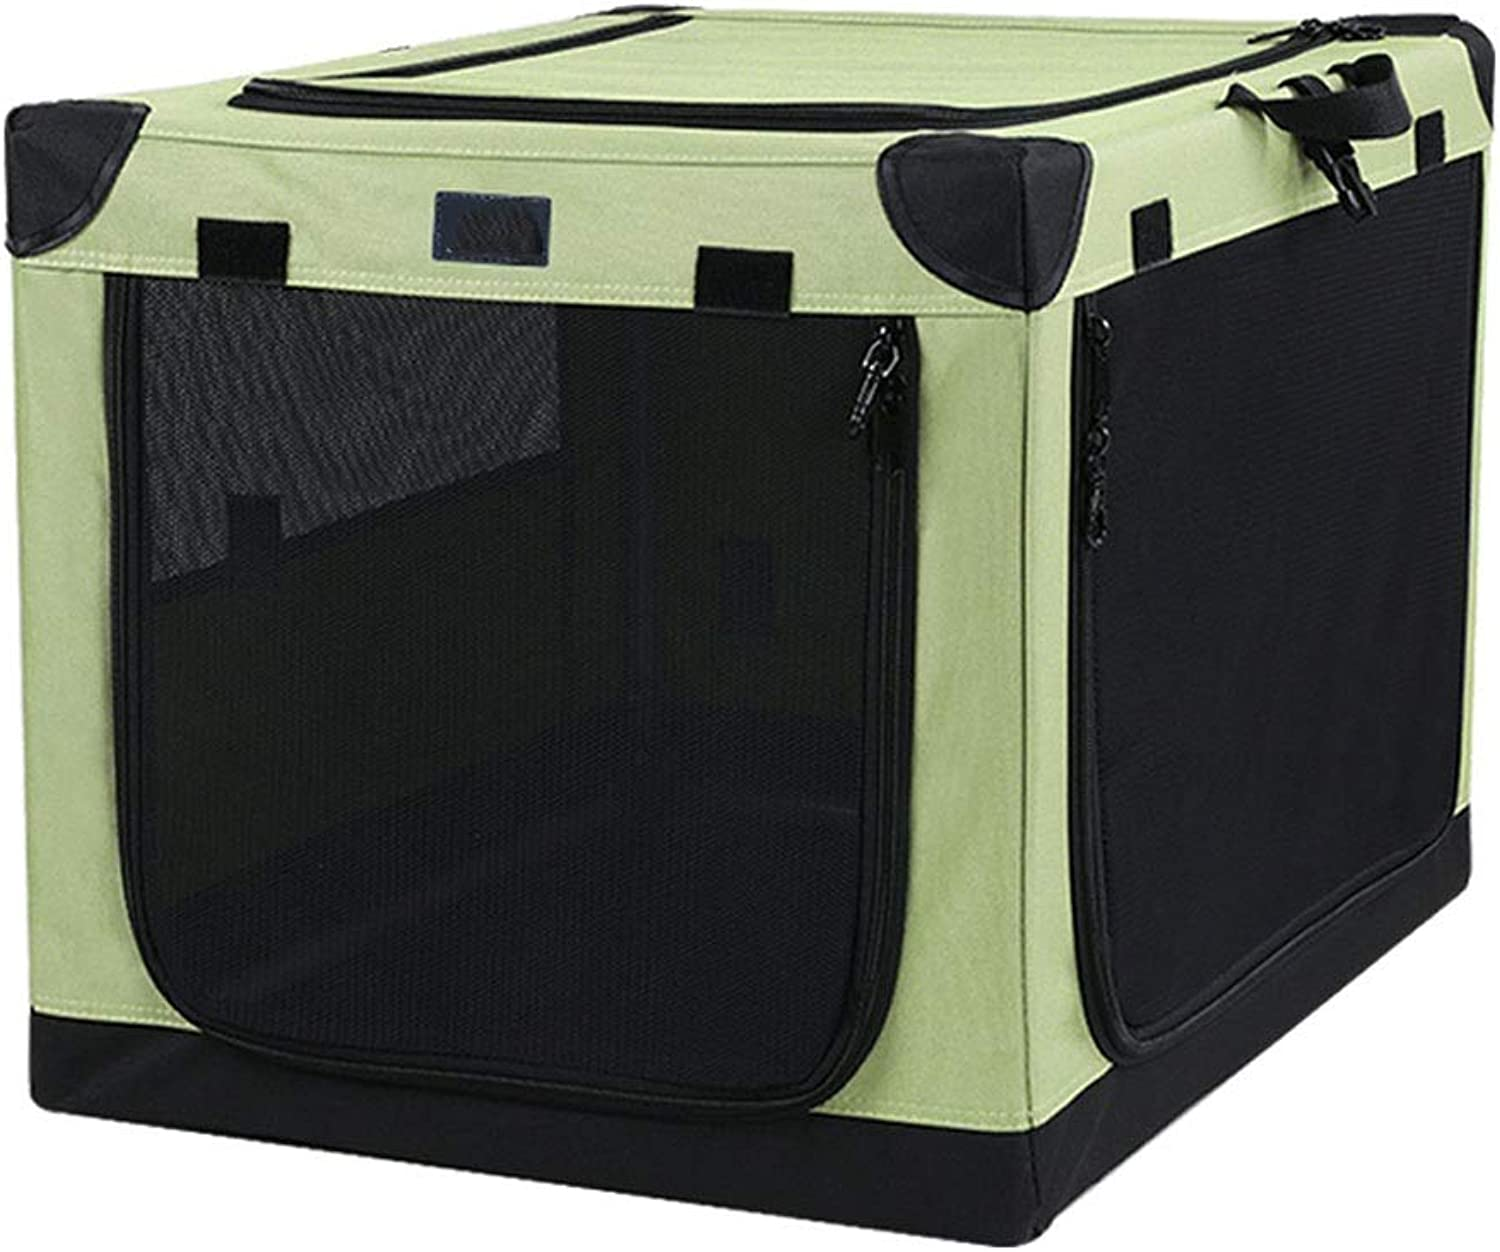 Carmounted, Kennel, Outing Travel Collapsible Dog Cage Pet Isolation Space Medium Large Kennel Cat House (Size   L)